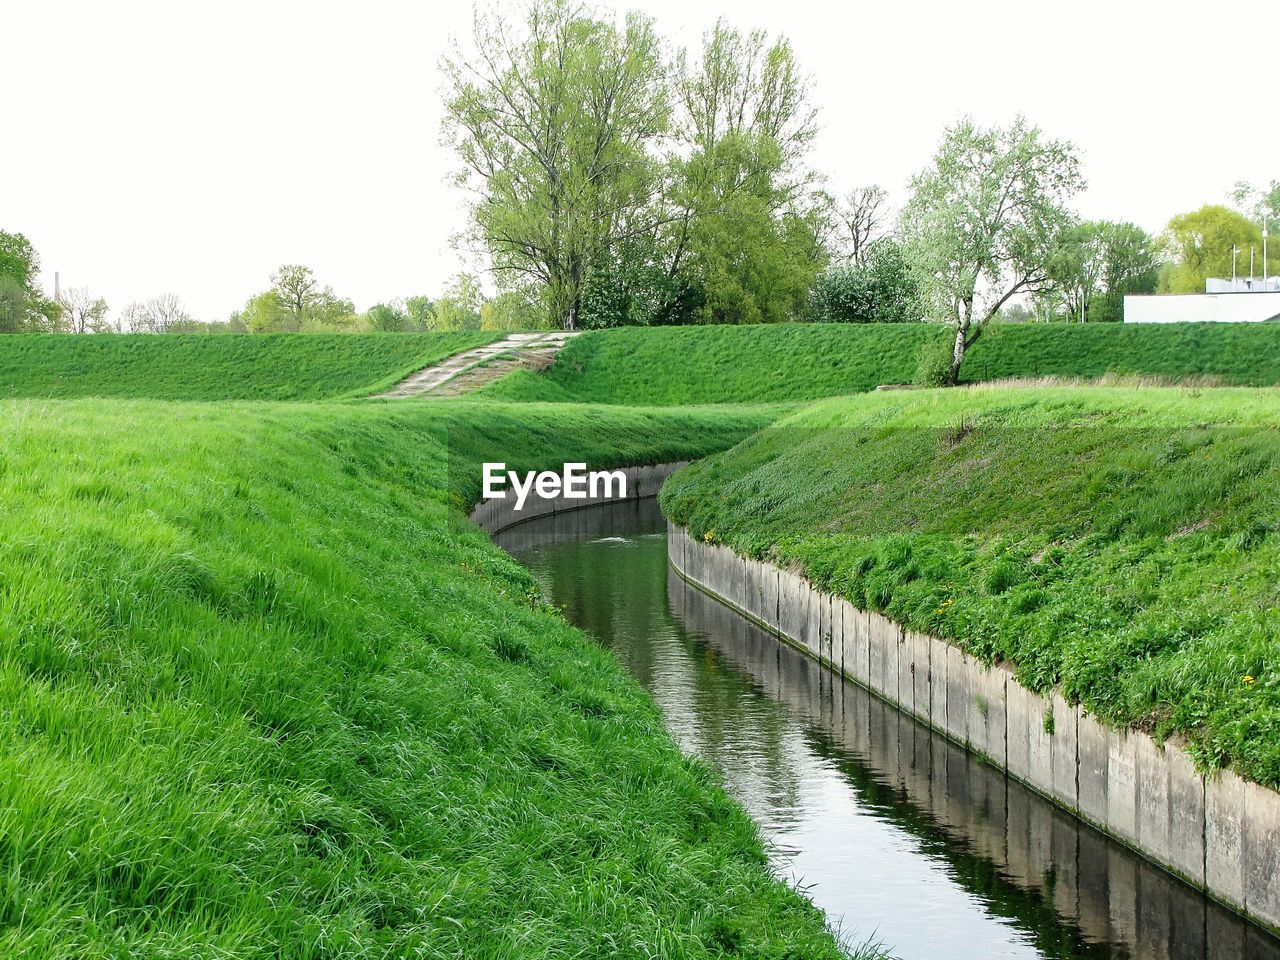 plant, grass, green color, tree, growth, nature, no people, day, tranquility, field, sky, footpath, beauty in nature, land, tranquil scene, water, landscape, park, outdoors, canal, hedge, garden path